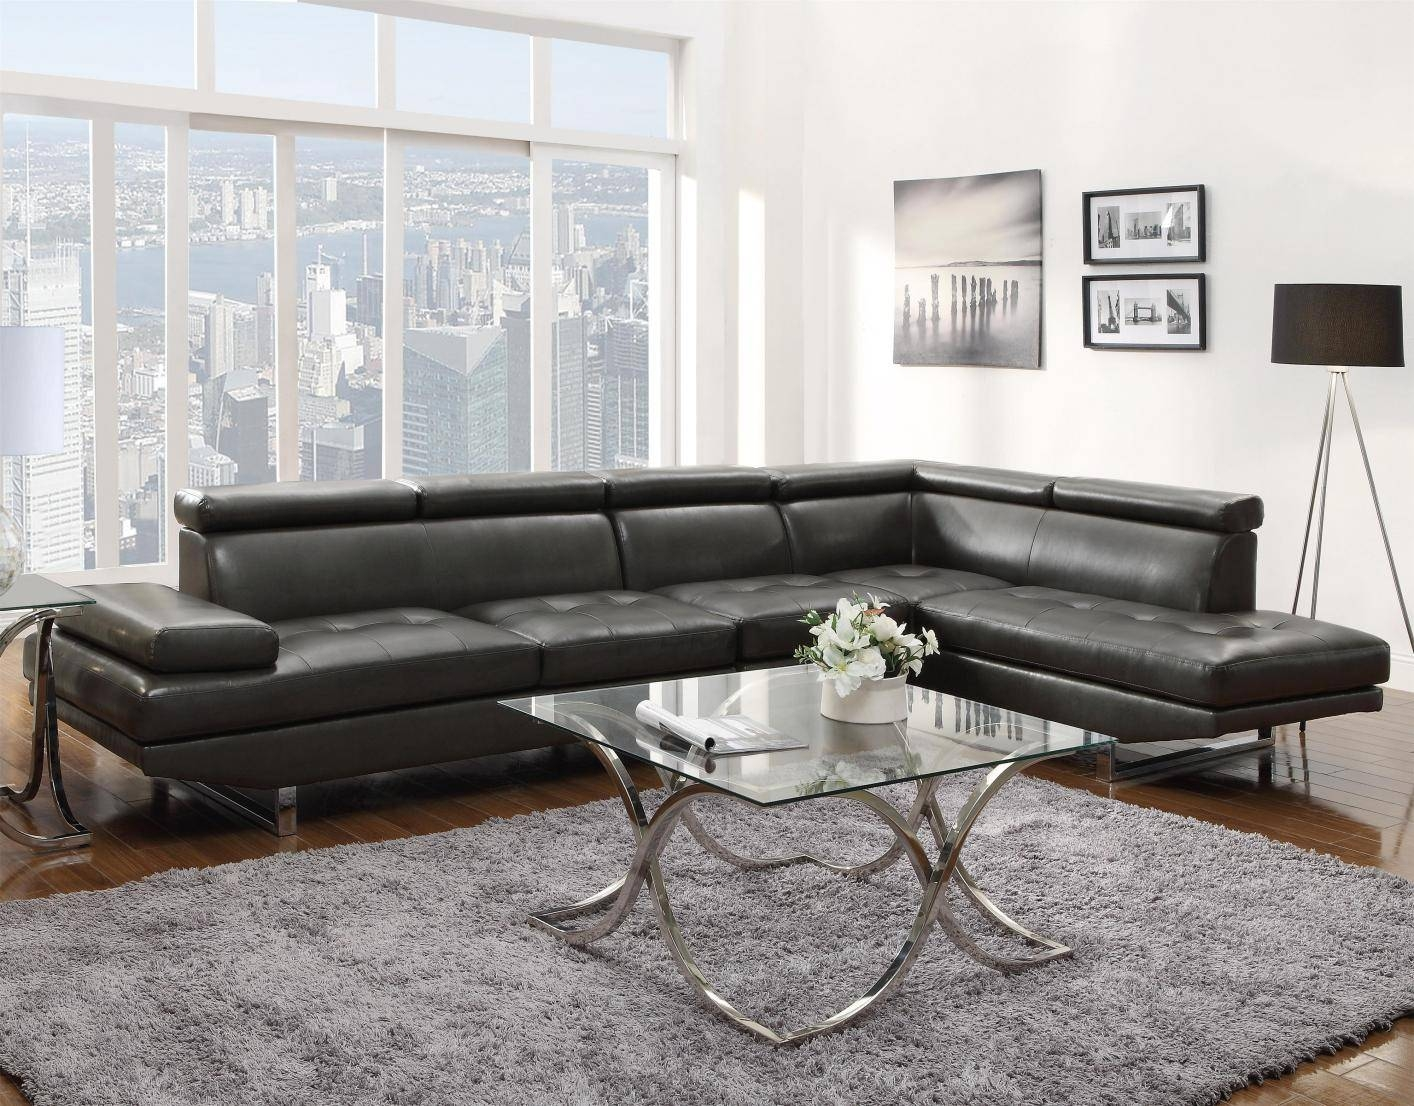 100 sectional sofa outlet round sectional couch curved sect